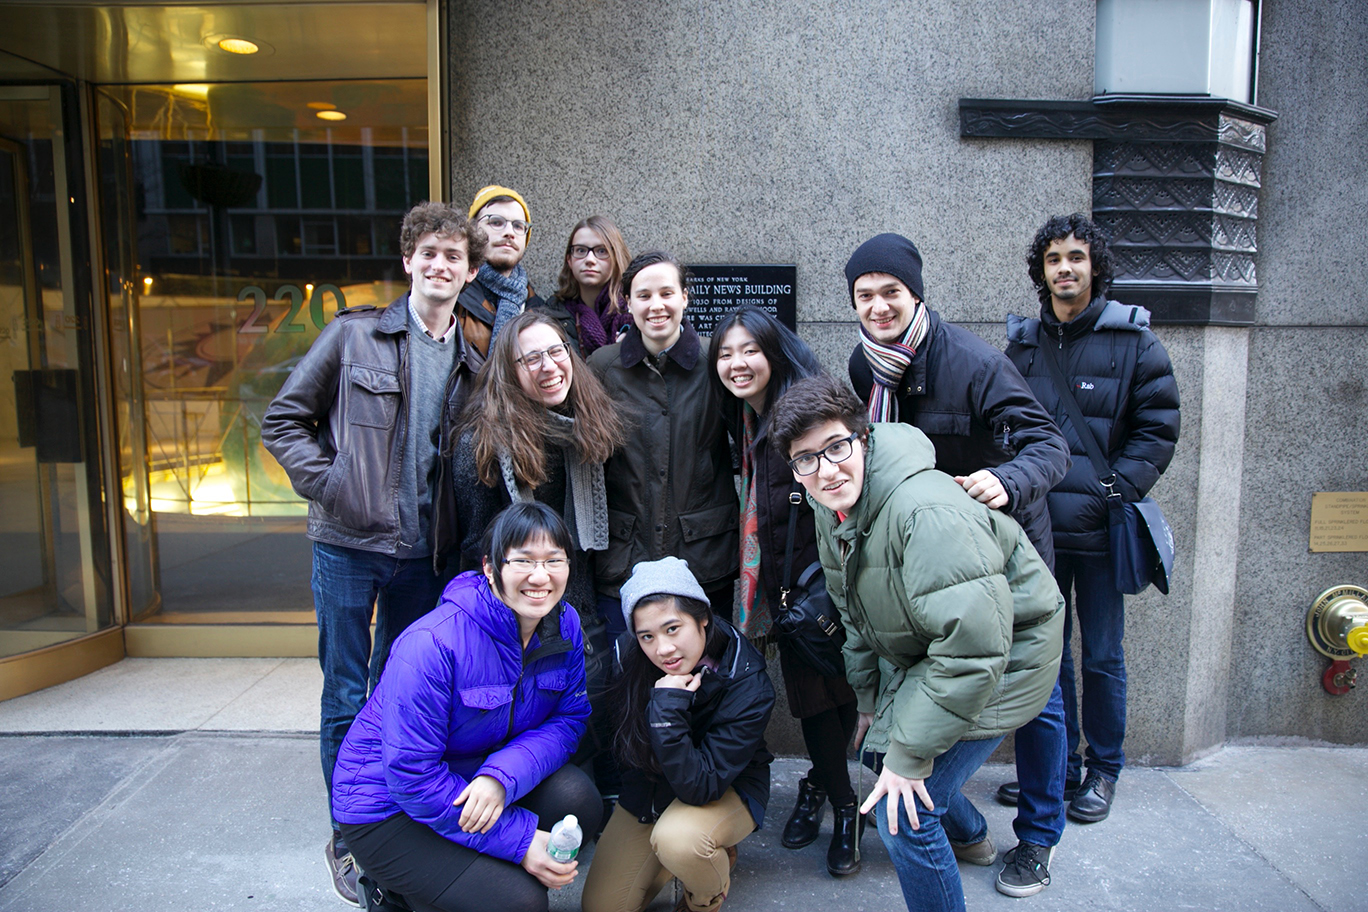 Hamilton students in front of the old Daily News building where Beanstalk offices are located.